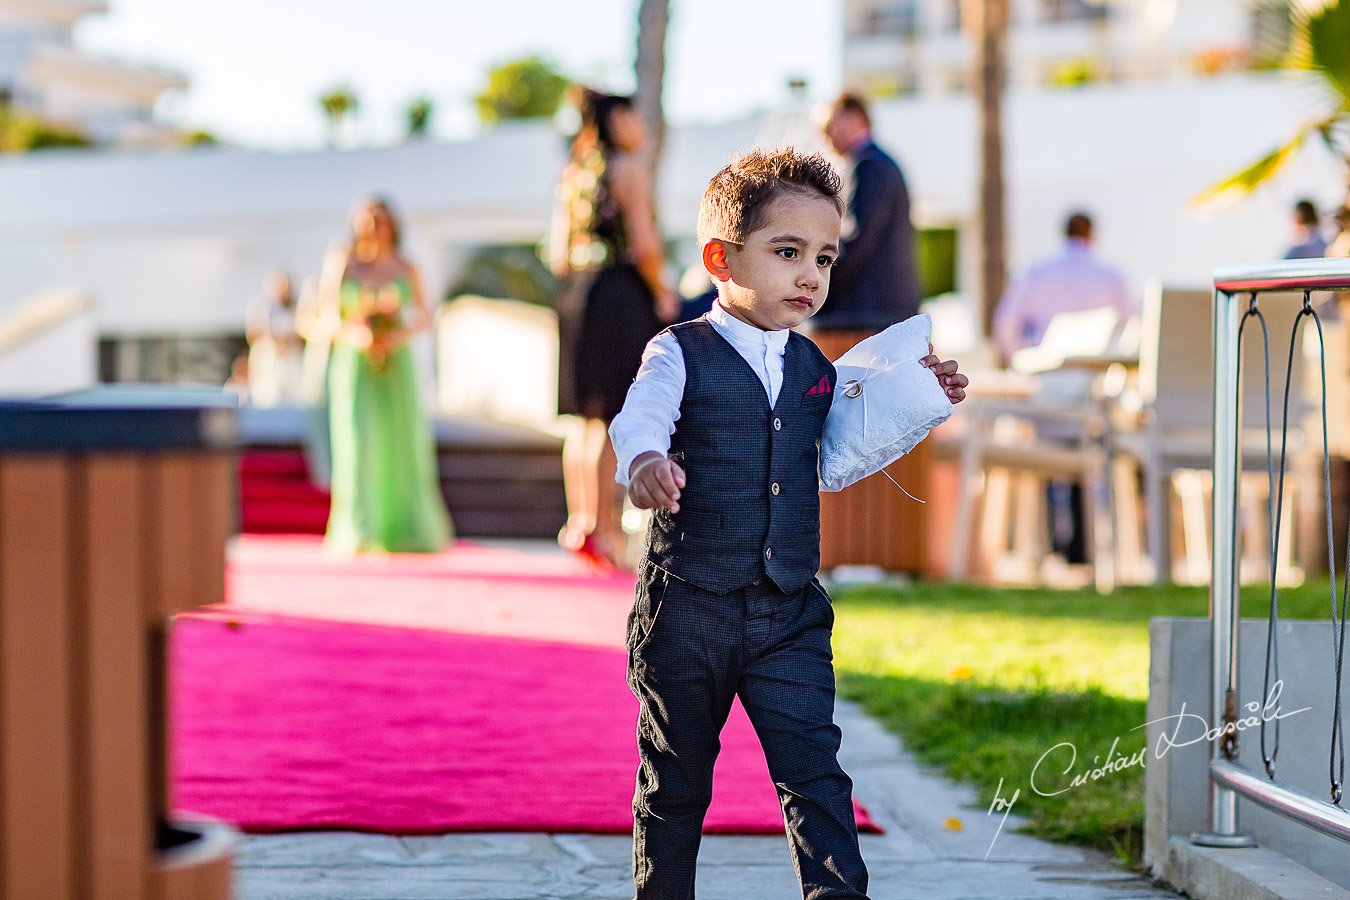 Paige boy photographed during the ceremony, as part of an Exclusive Wedding photography at Grand Resort Limassol, captured by Cyprus Wedding Photographer Cristian Dascalu.